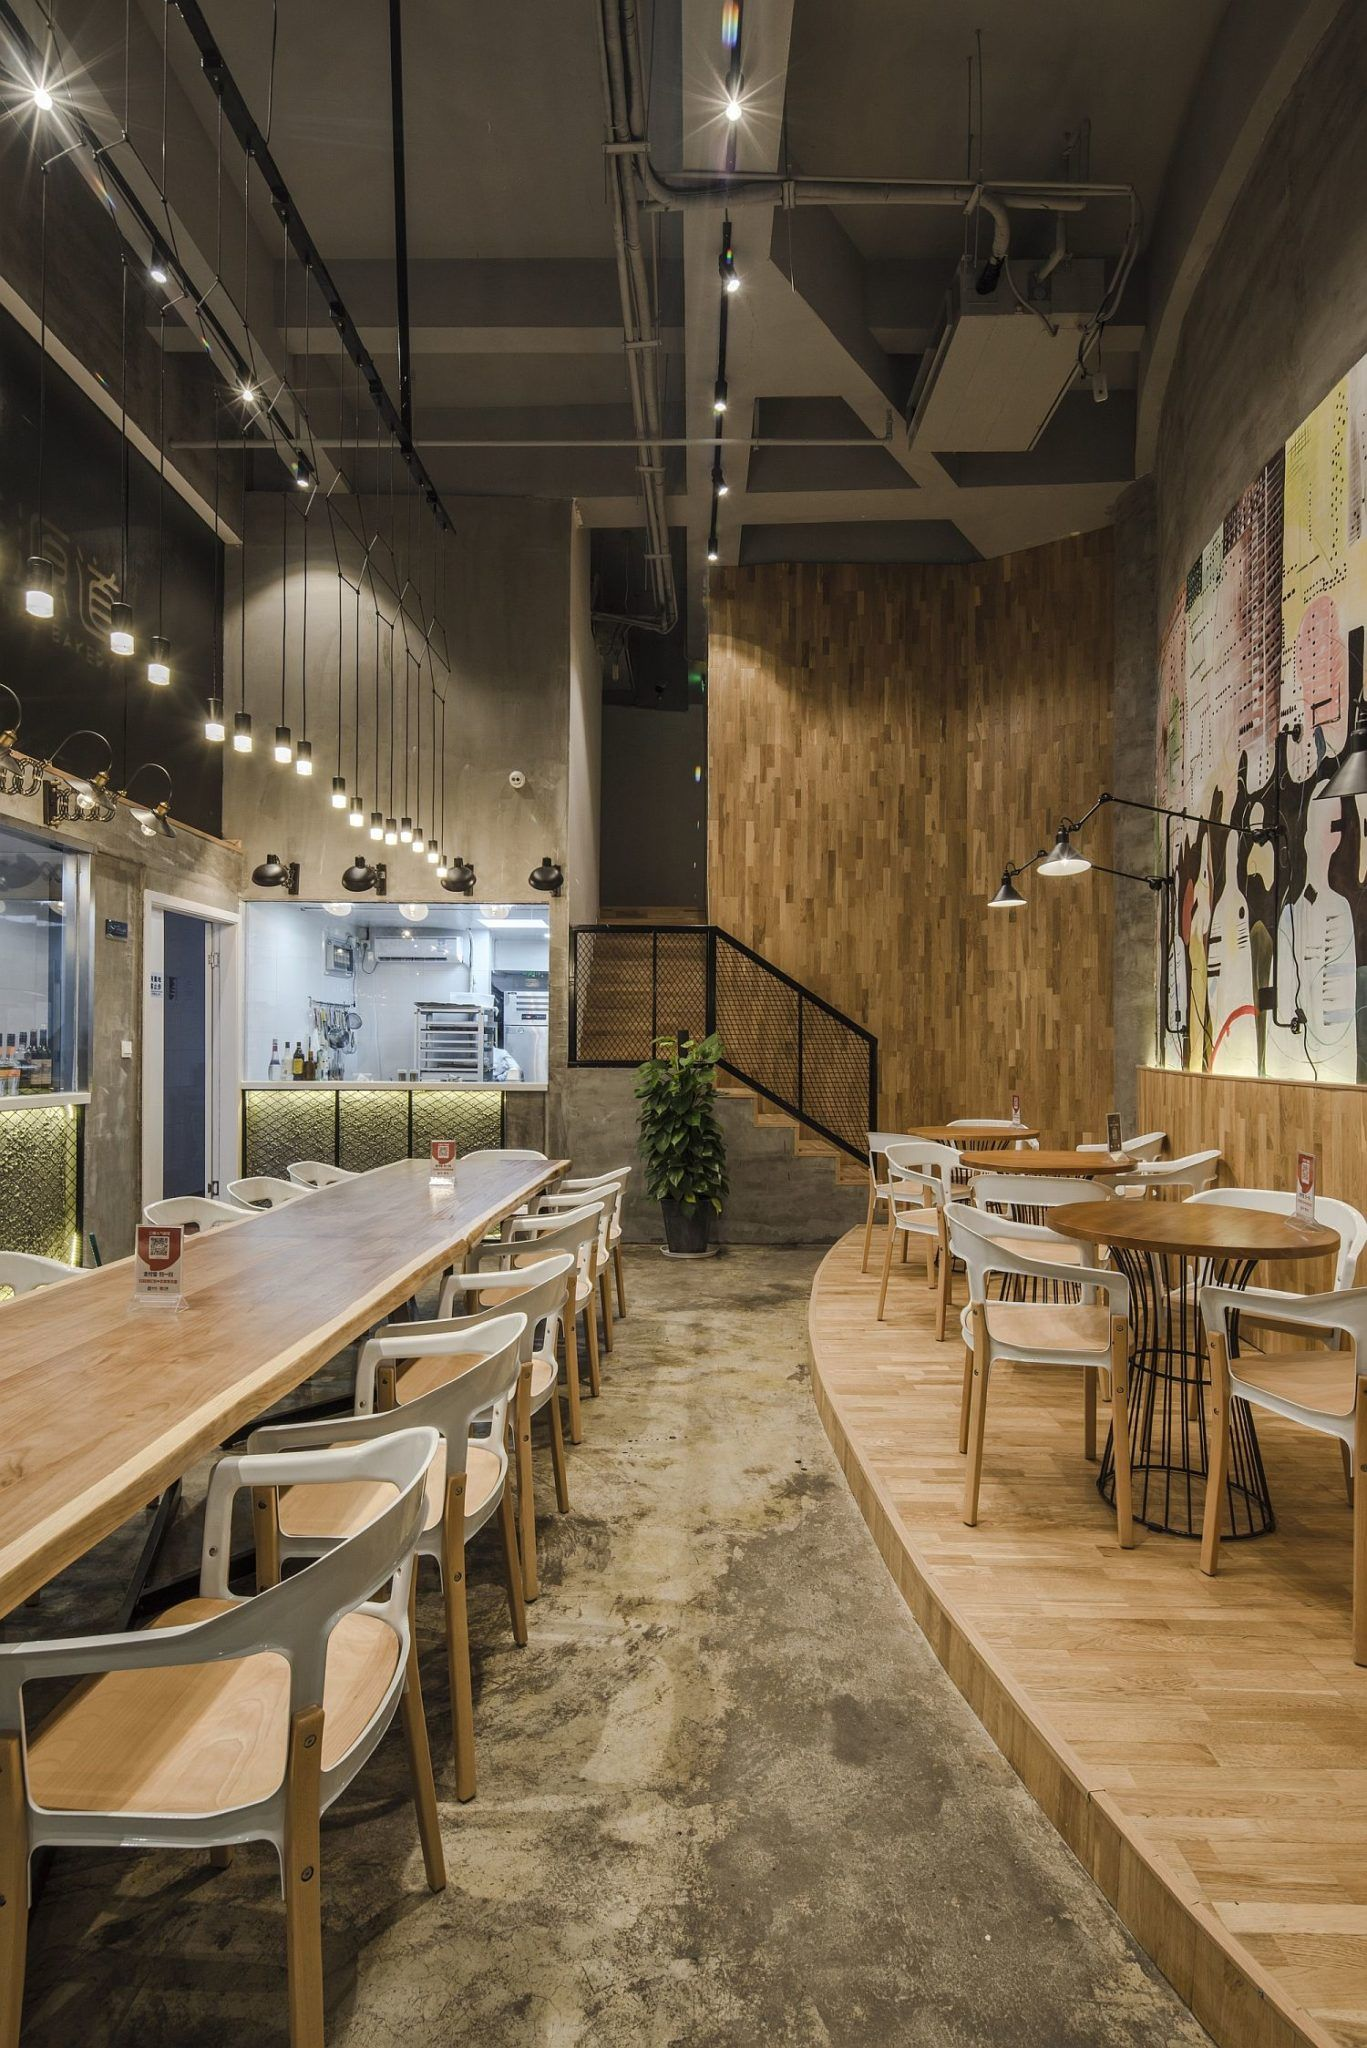 Original Bakery In China With A Modern-Industrial, Multi